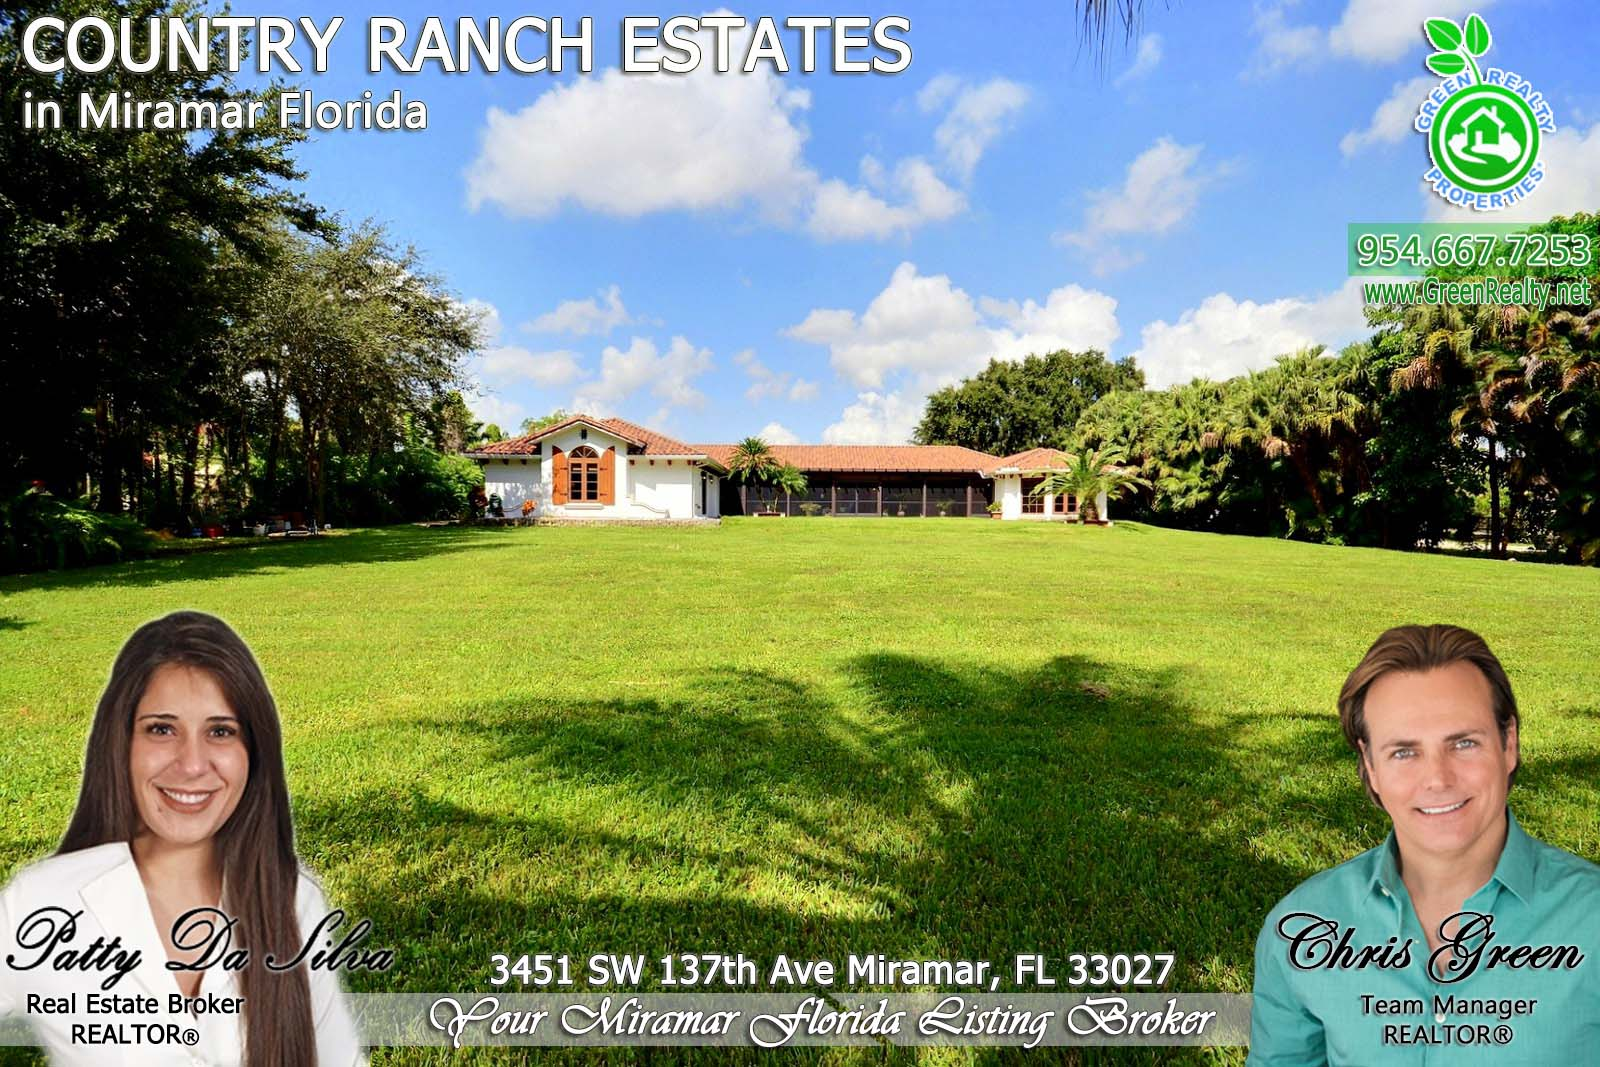 53 Green Realty Properties Sells Miramar Real Estate